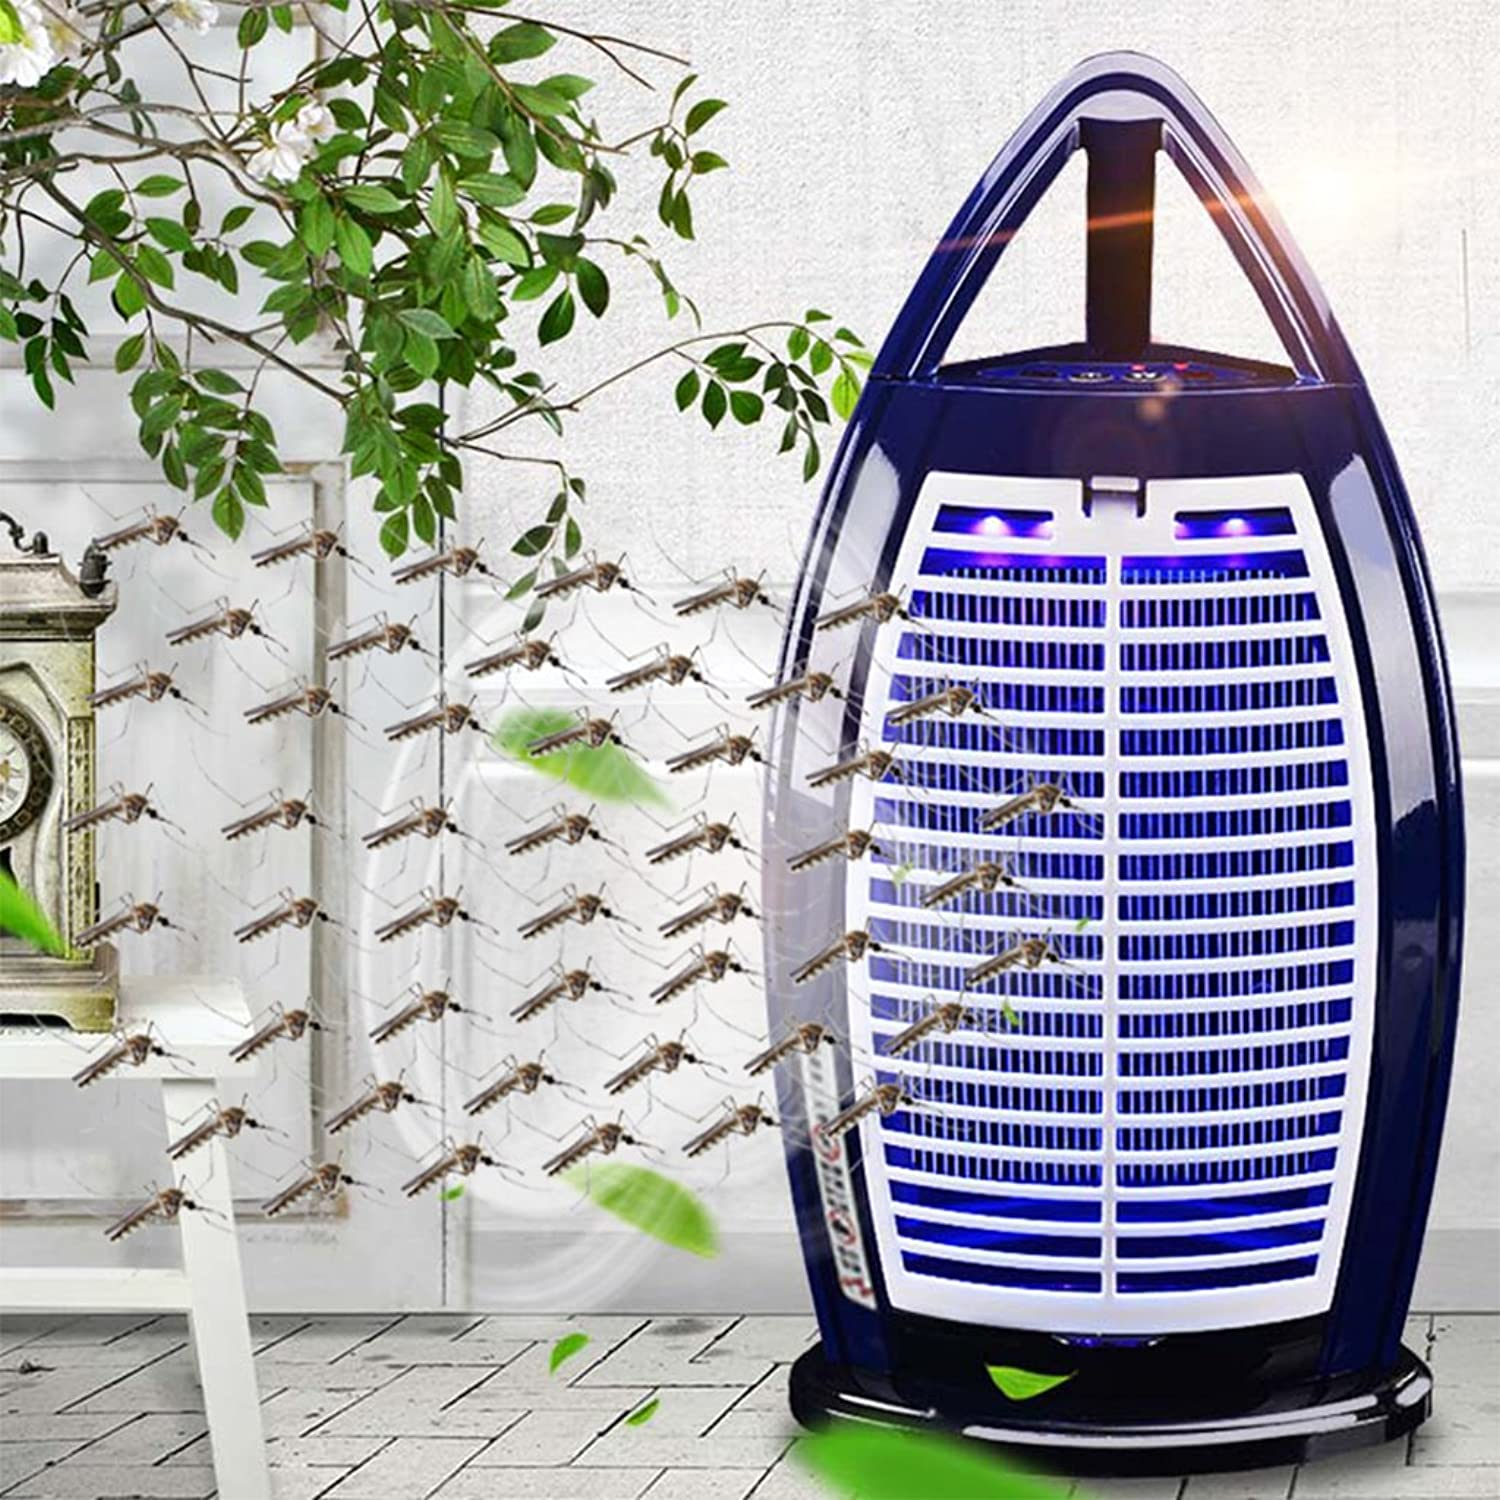 Fly Killer,Effect Lamp,Maternal Infant Mosquito Killer Mosquito Control,Insect Killer Ideal for Home Commercial Use Free Standing Or Wall Hanging Alternative to A Fly Swatter Black